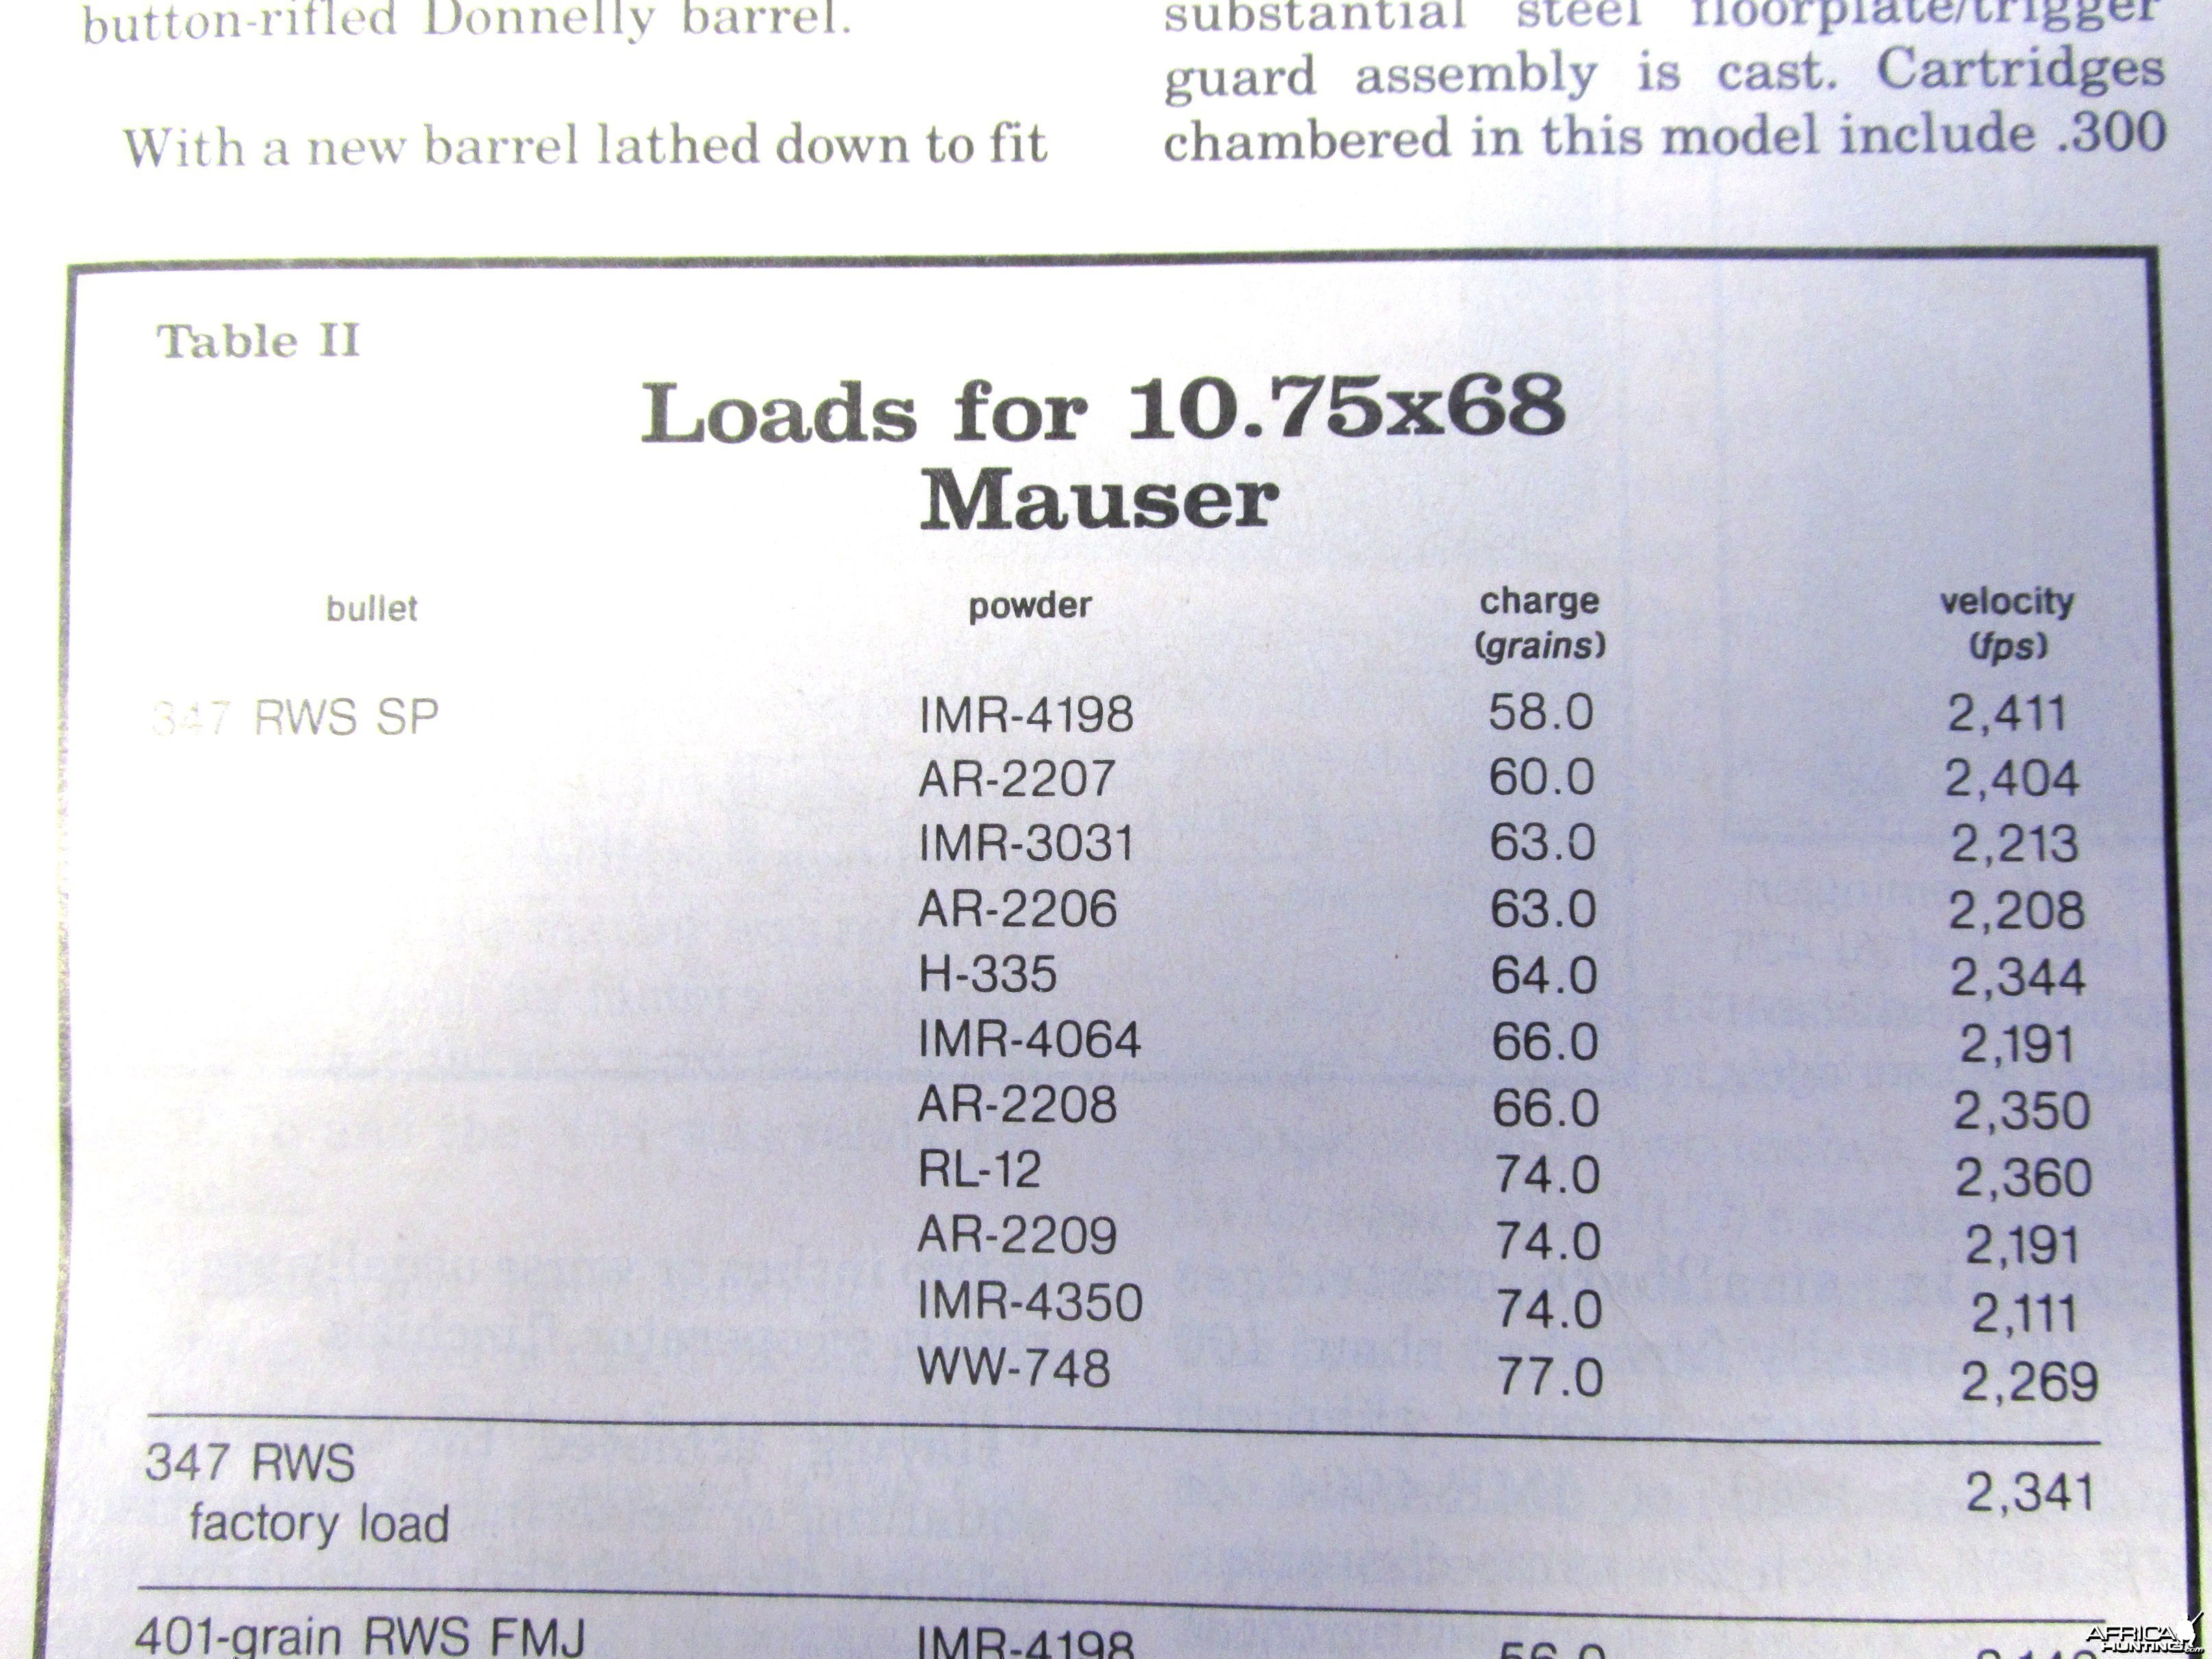 Loads for 10.75x68 Mauser